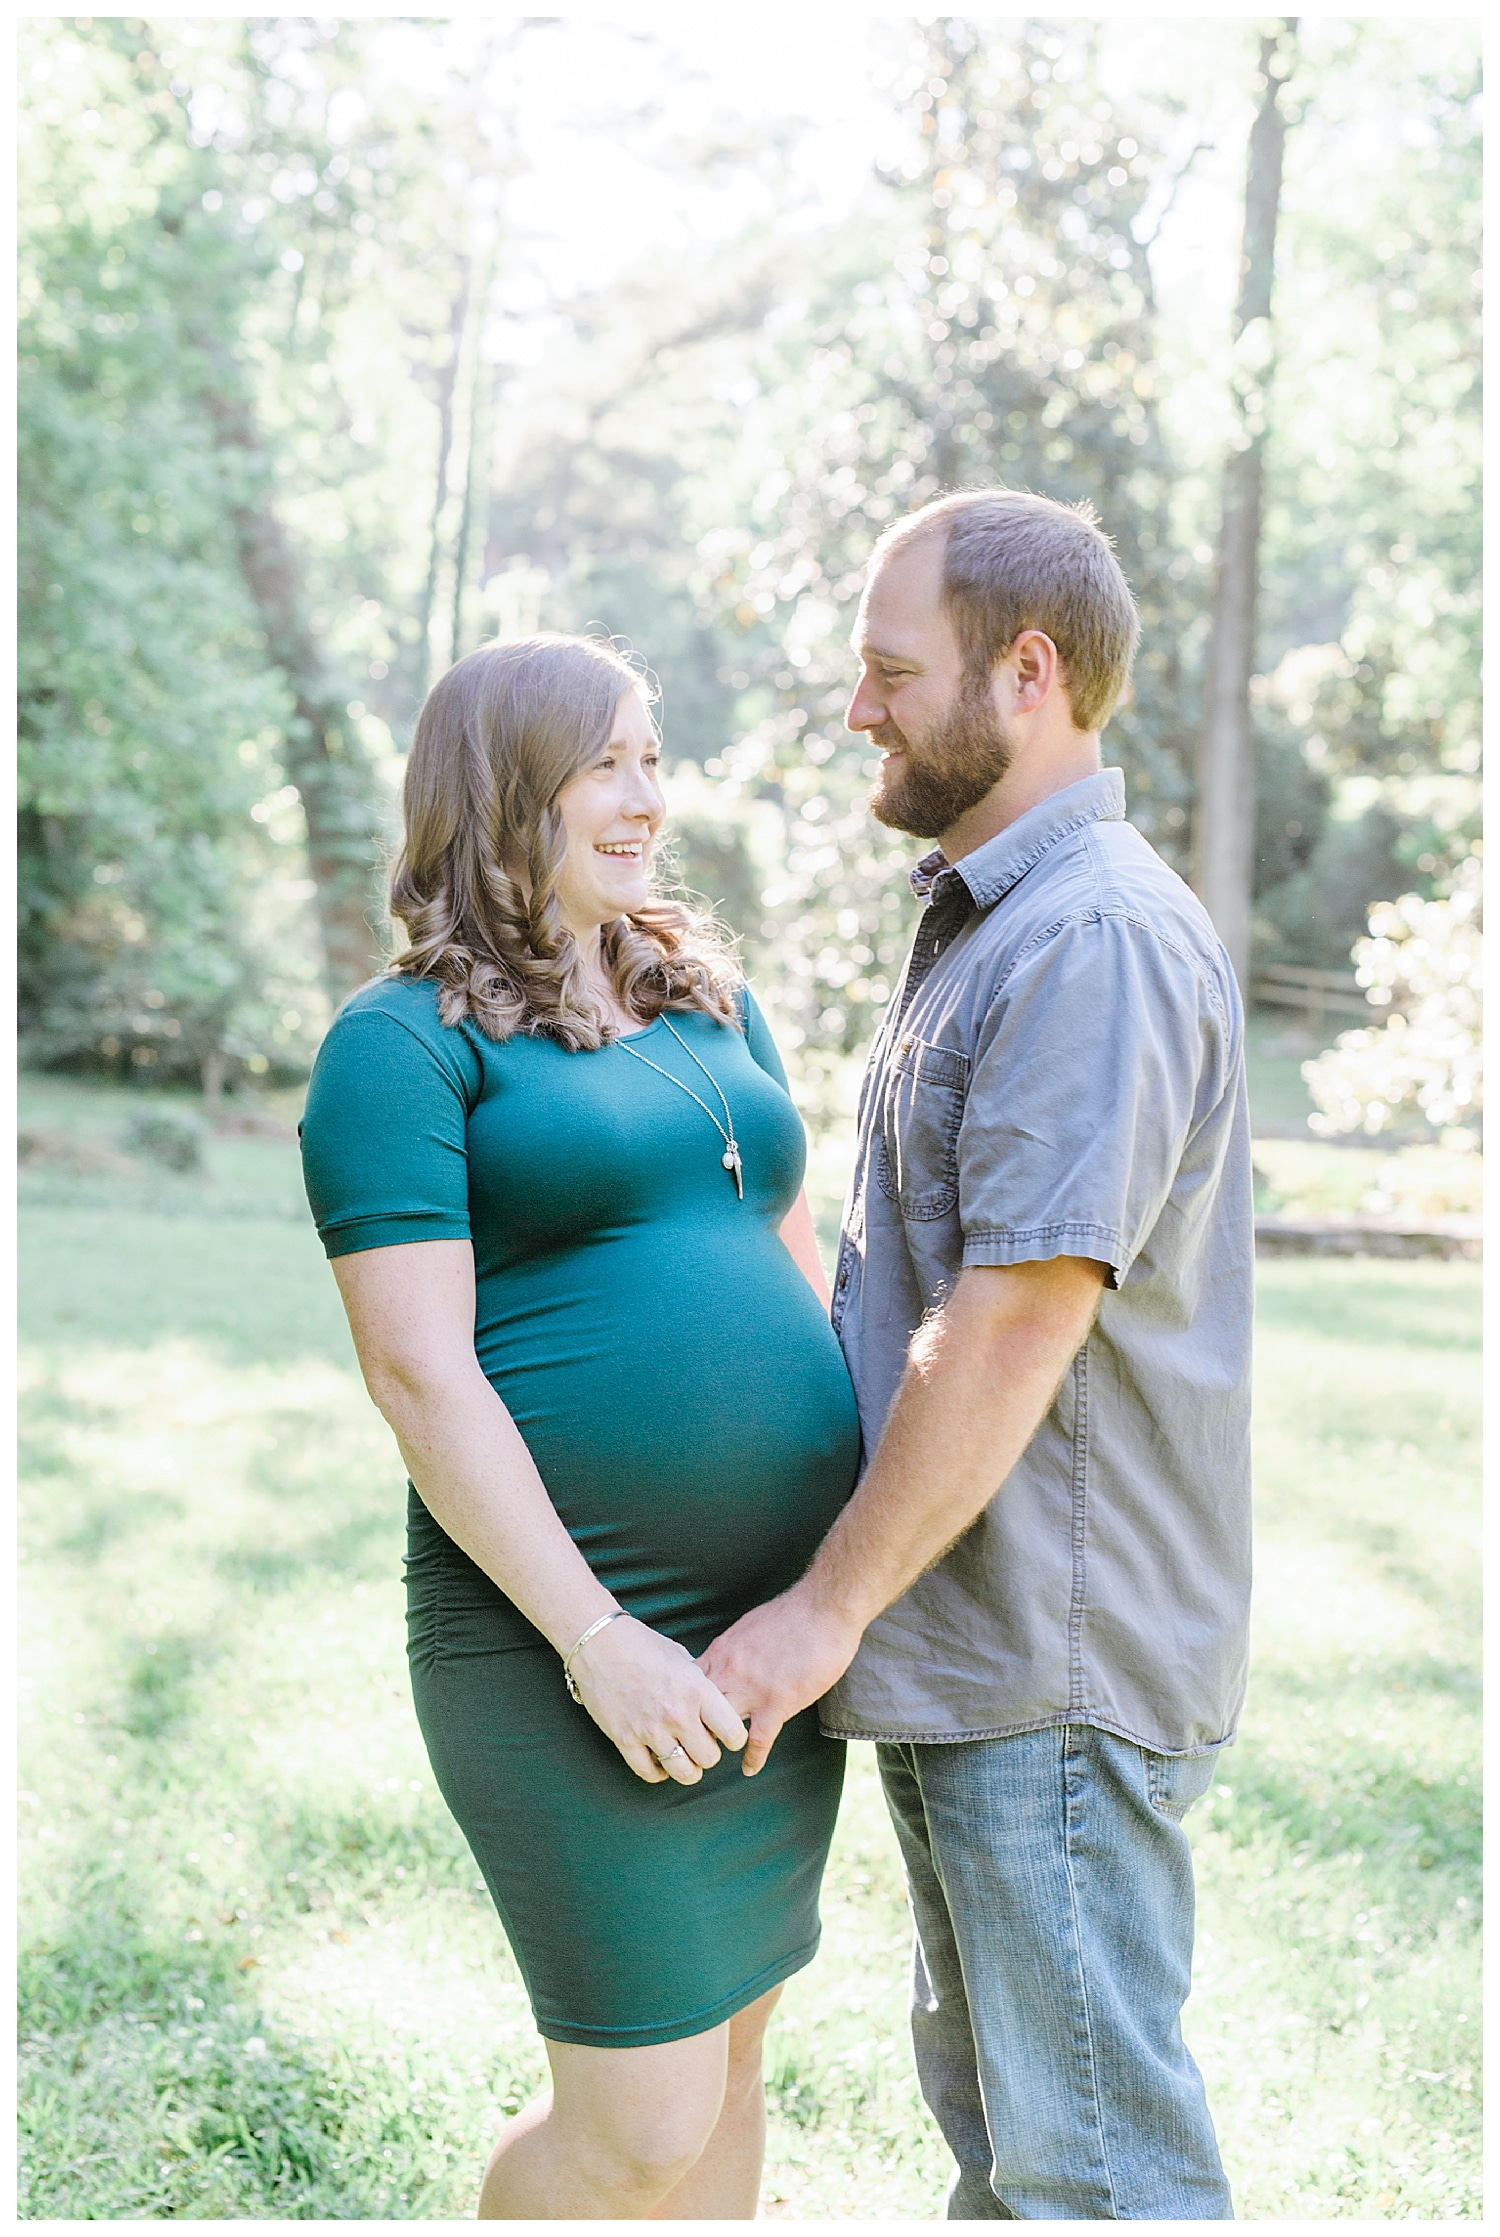 Maternity Pictures at Jackson Springs Park